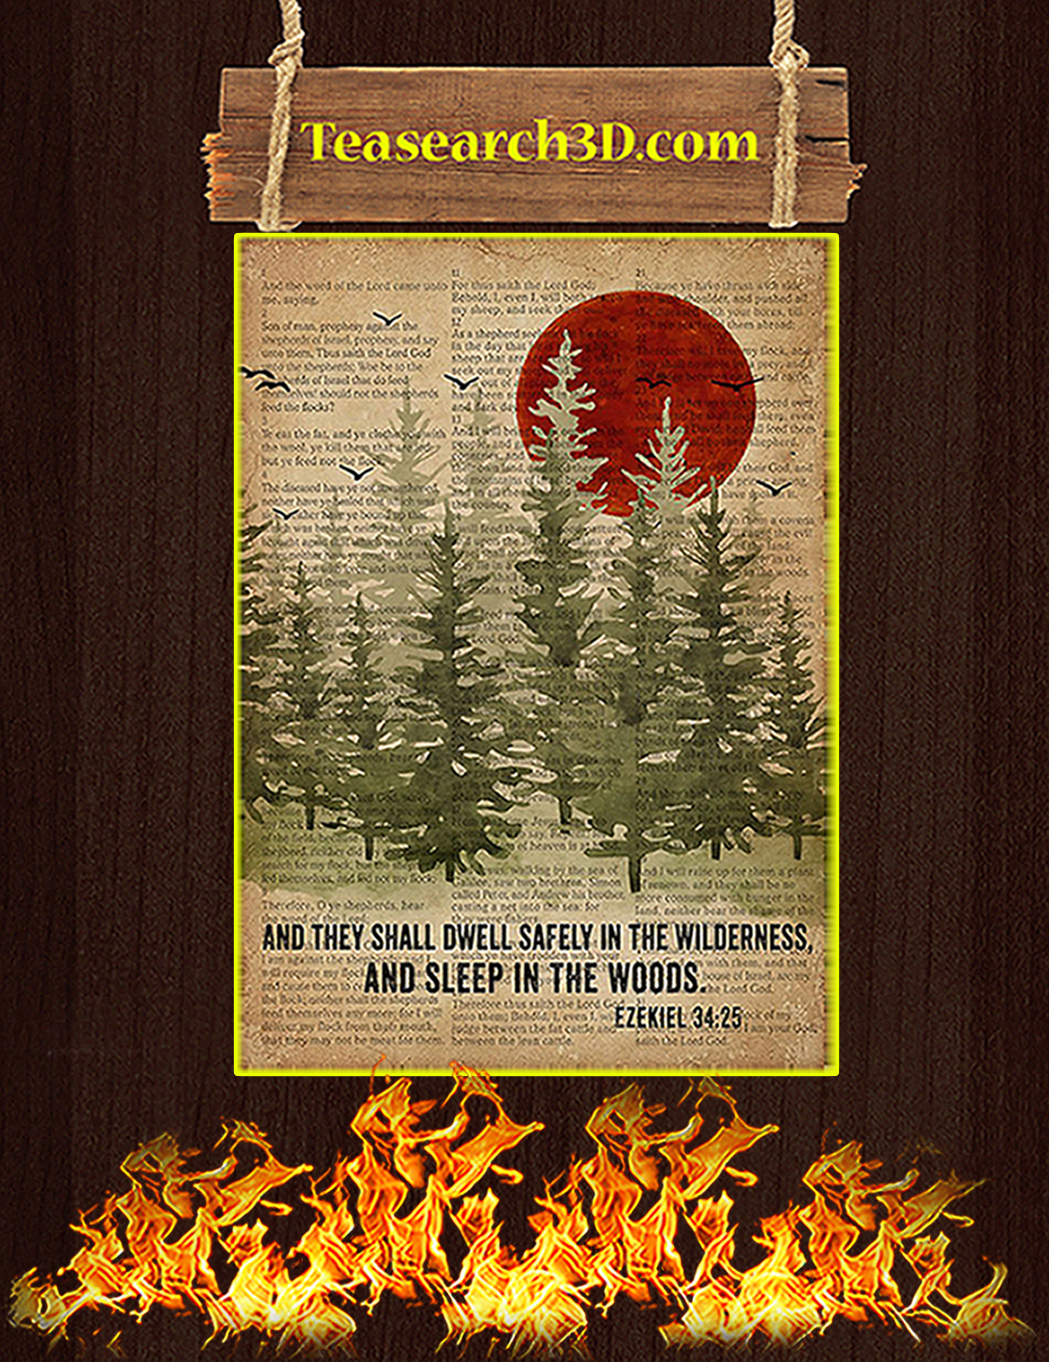 And they shall dwell safety in the wilderness and sleep in the woods poster A1